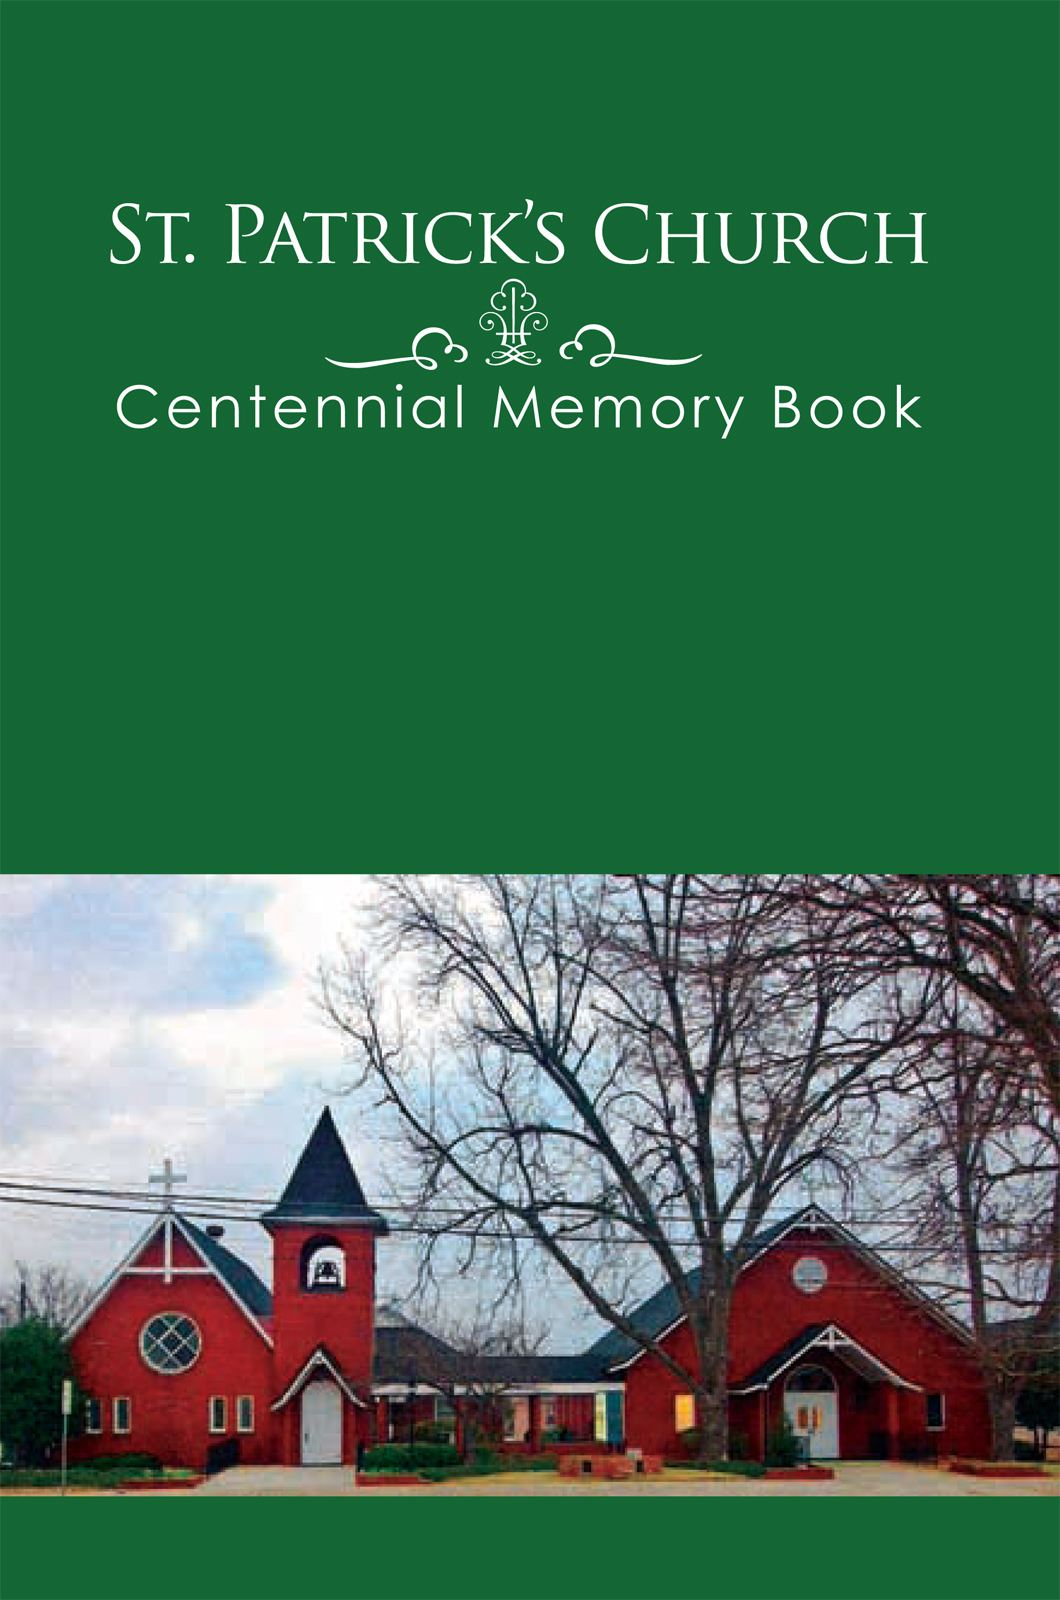 St. Patrick's Church Centennial Memory Book